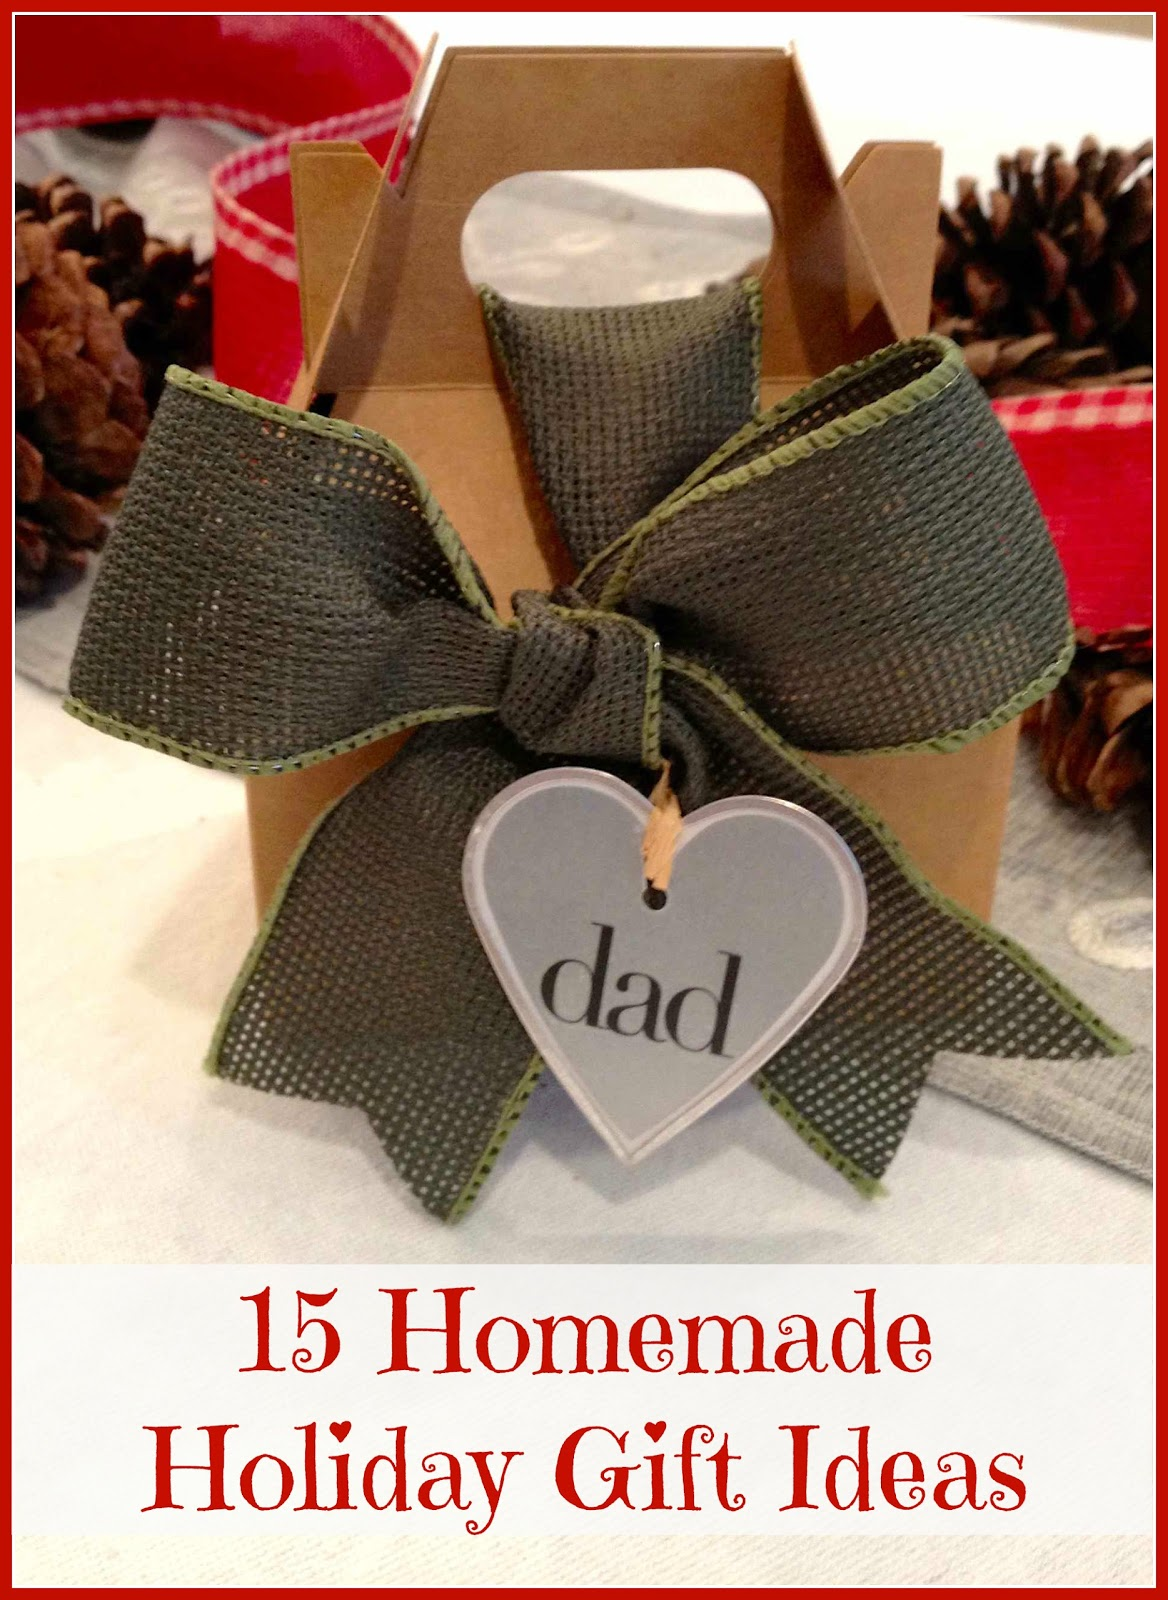 Homemade Christmas Gifts Ideas You'll Love | Driven by Decor Handmade Christmas Gifts Ideas